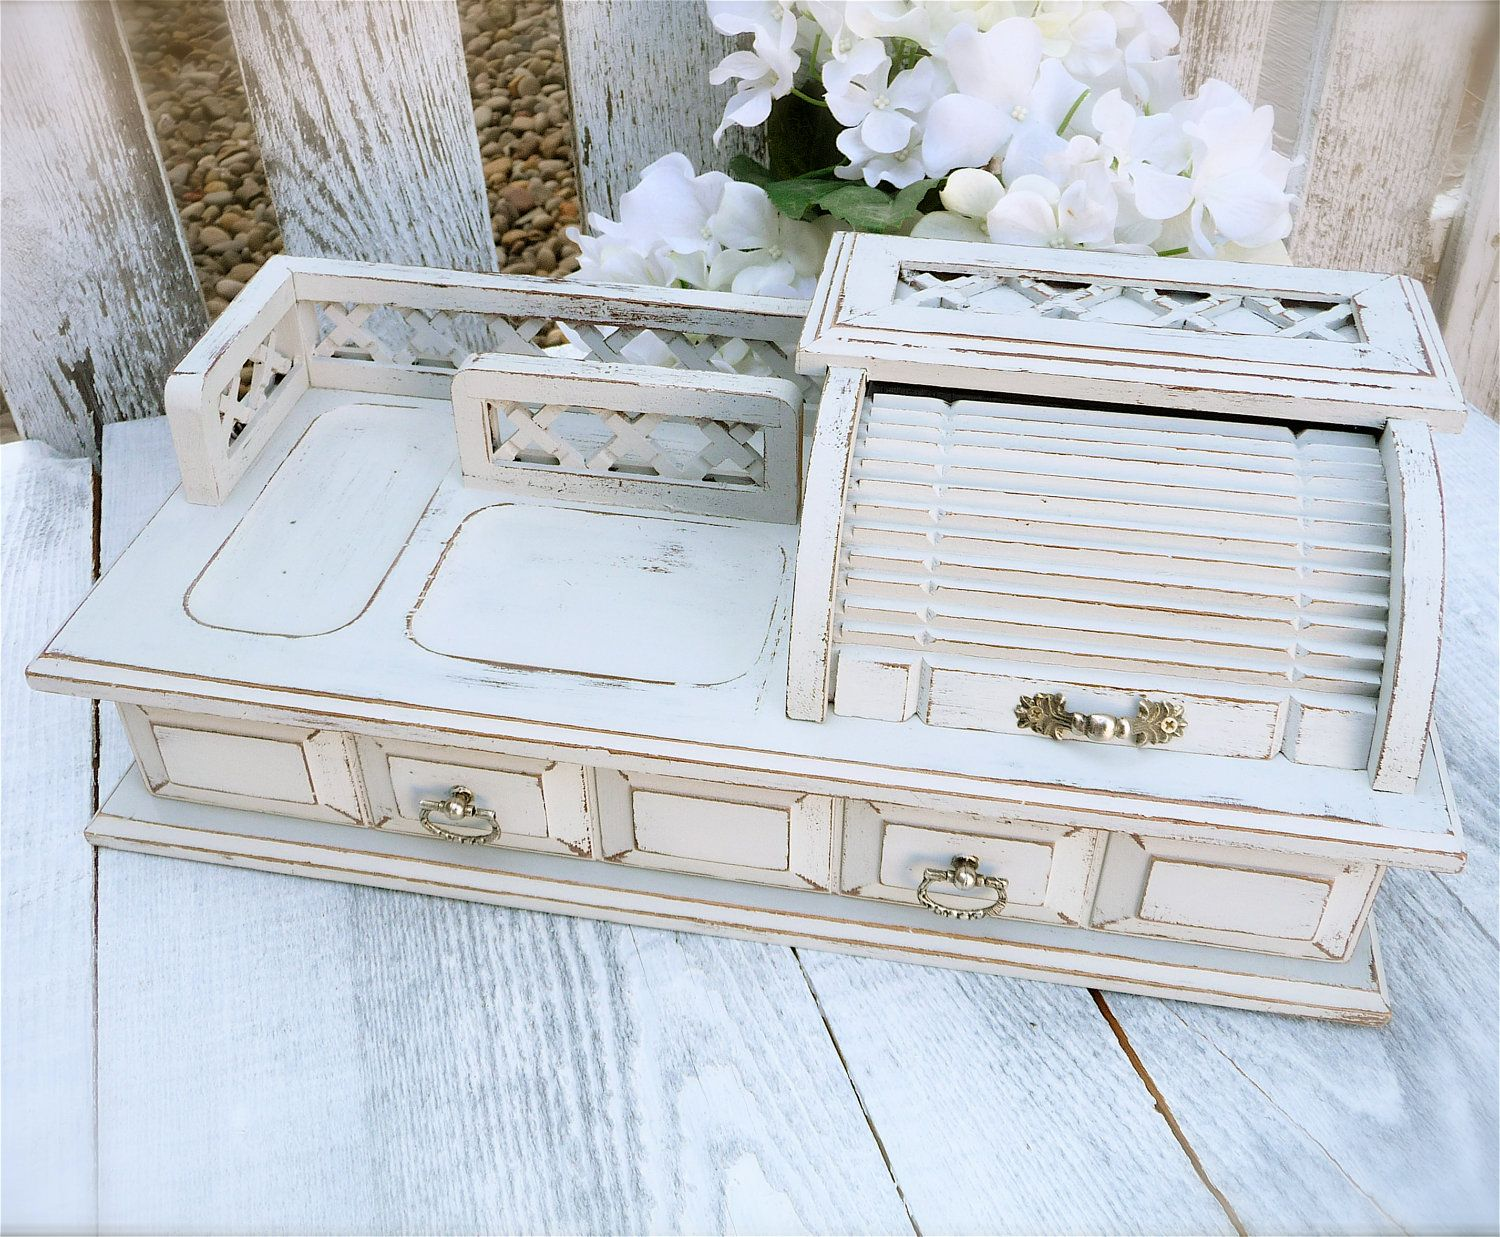 Upcycled Shabby Chic Desk Organizer Caddy By HuckleberryVntg 4200